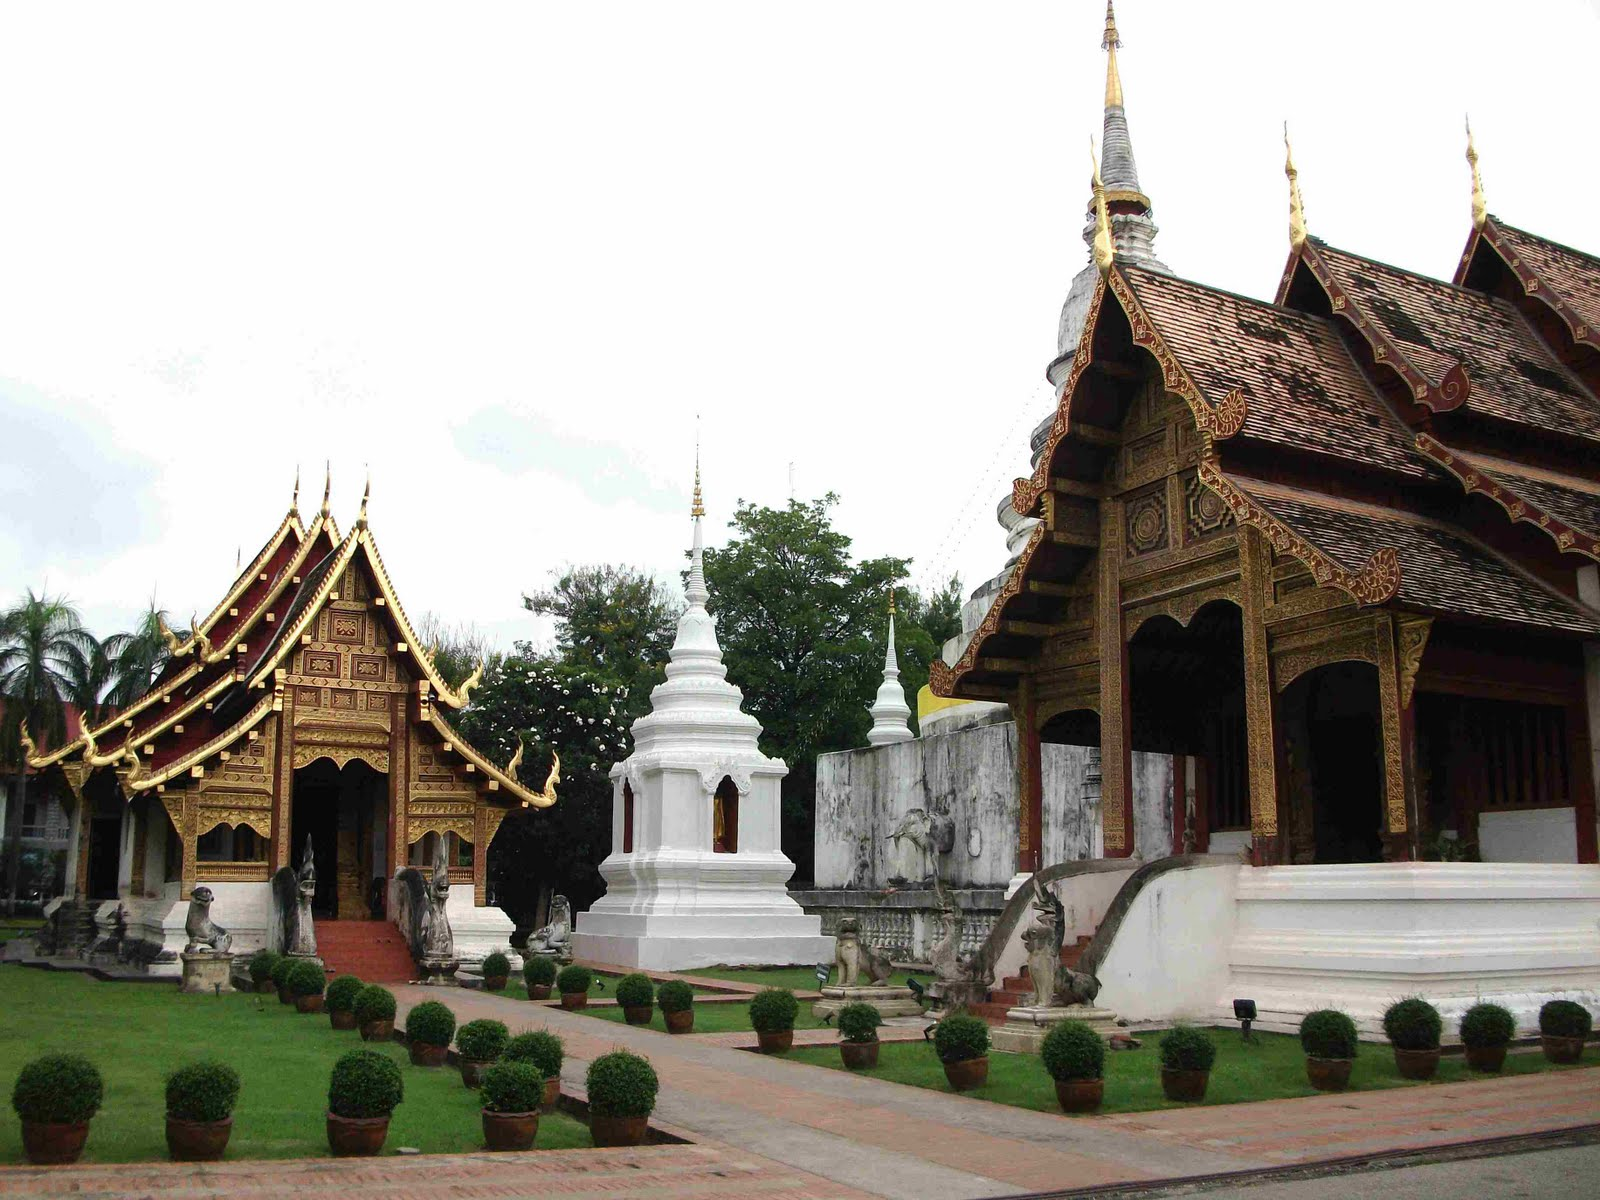 pianomania: WATS THE BIG DEAL ABOUT CHIANG MAI?